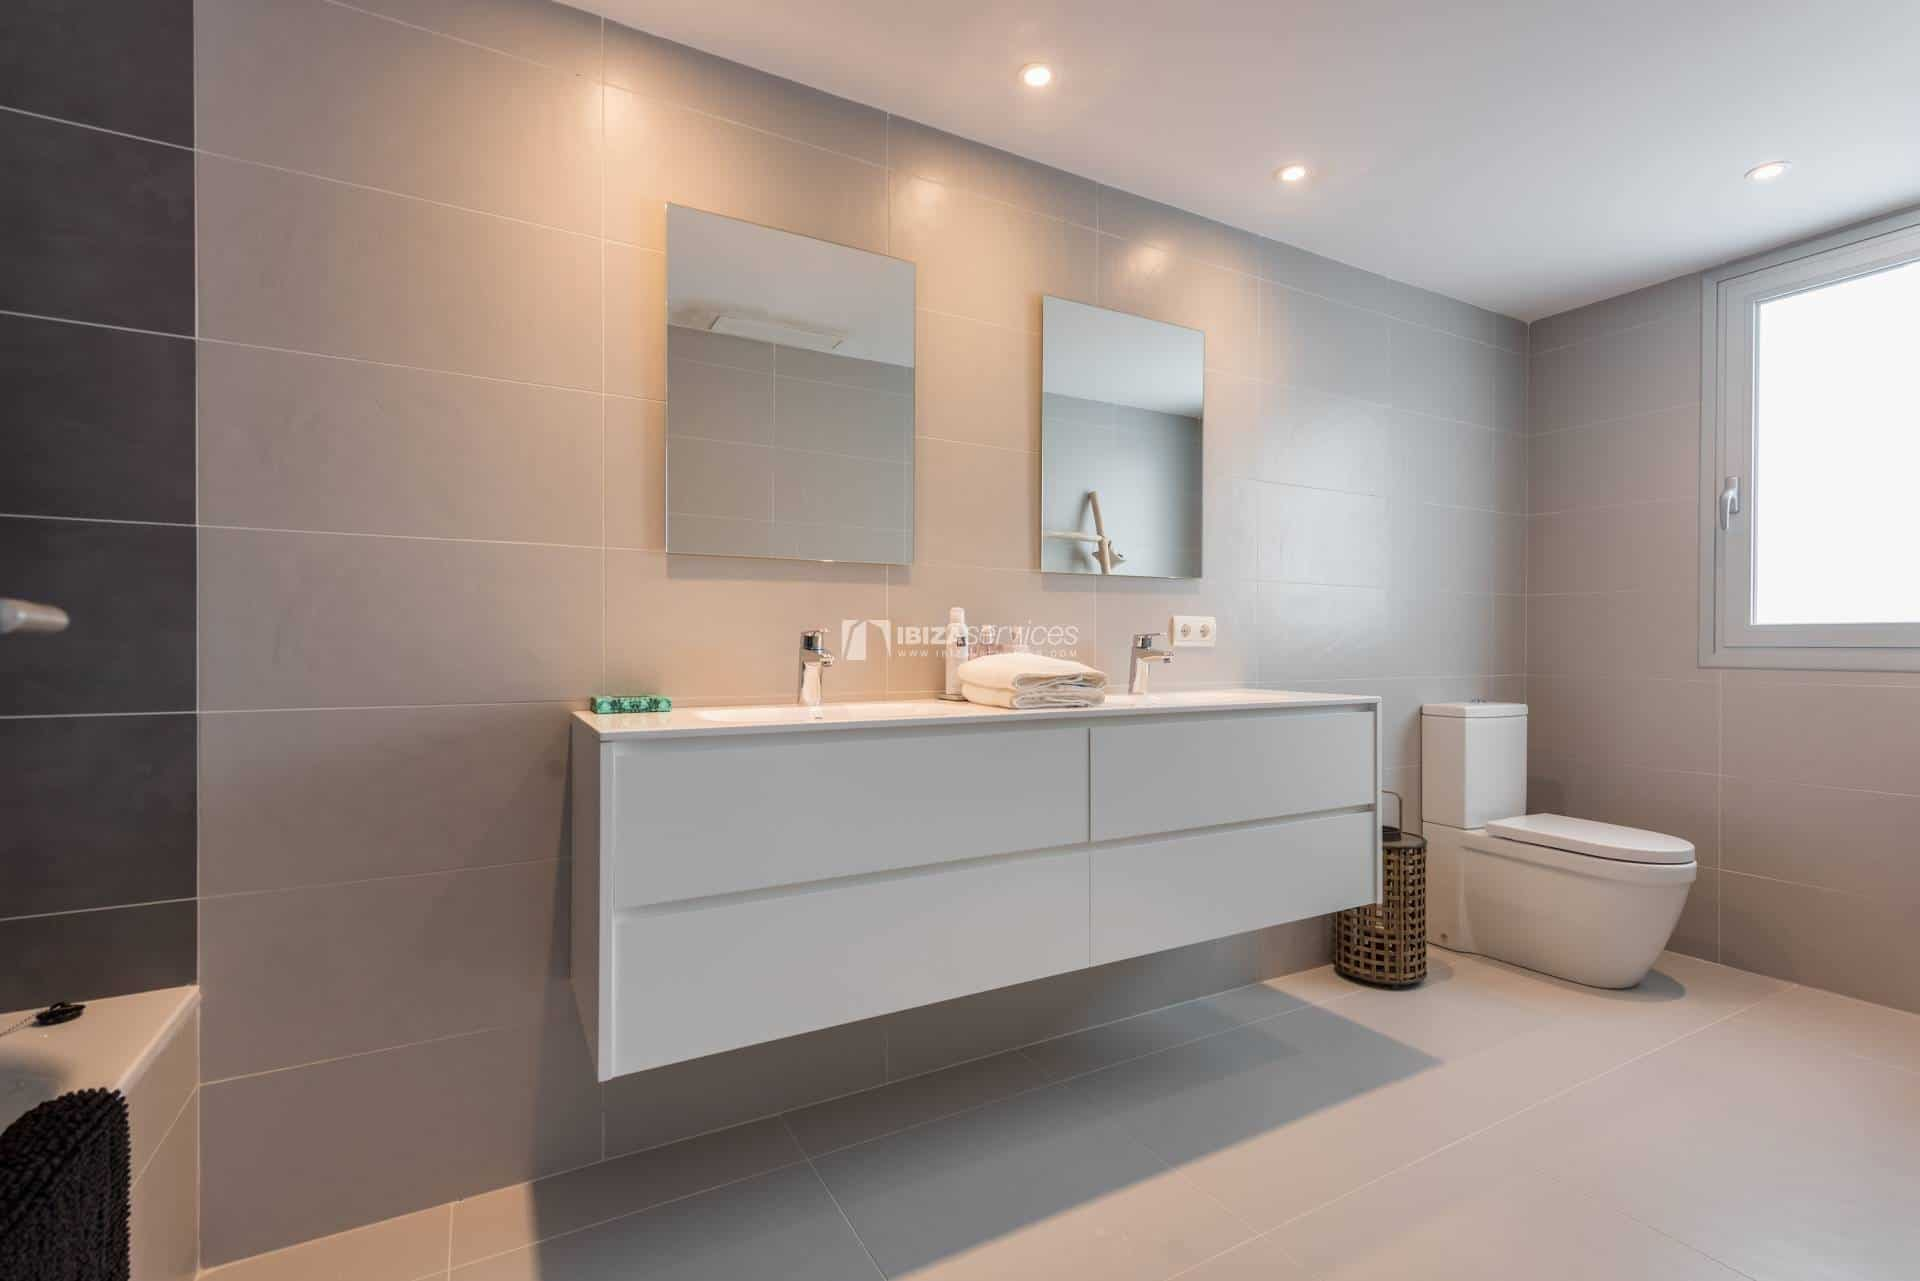 Modern penthouse 4 bedrooms for sale Jesus perspectiva 9